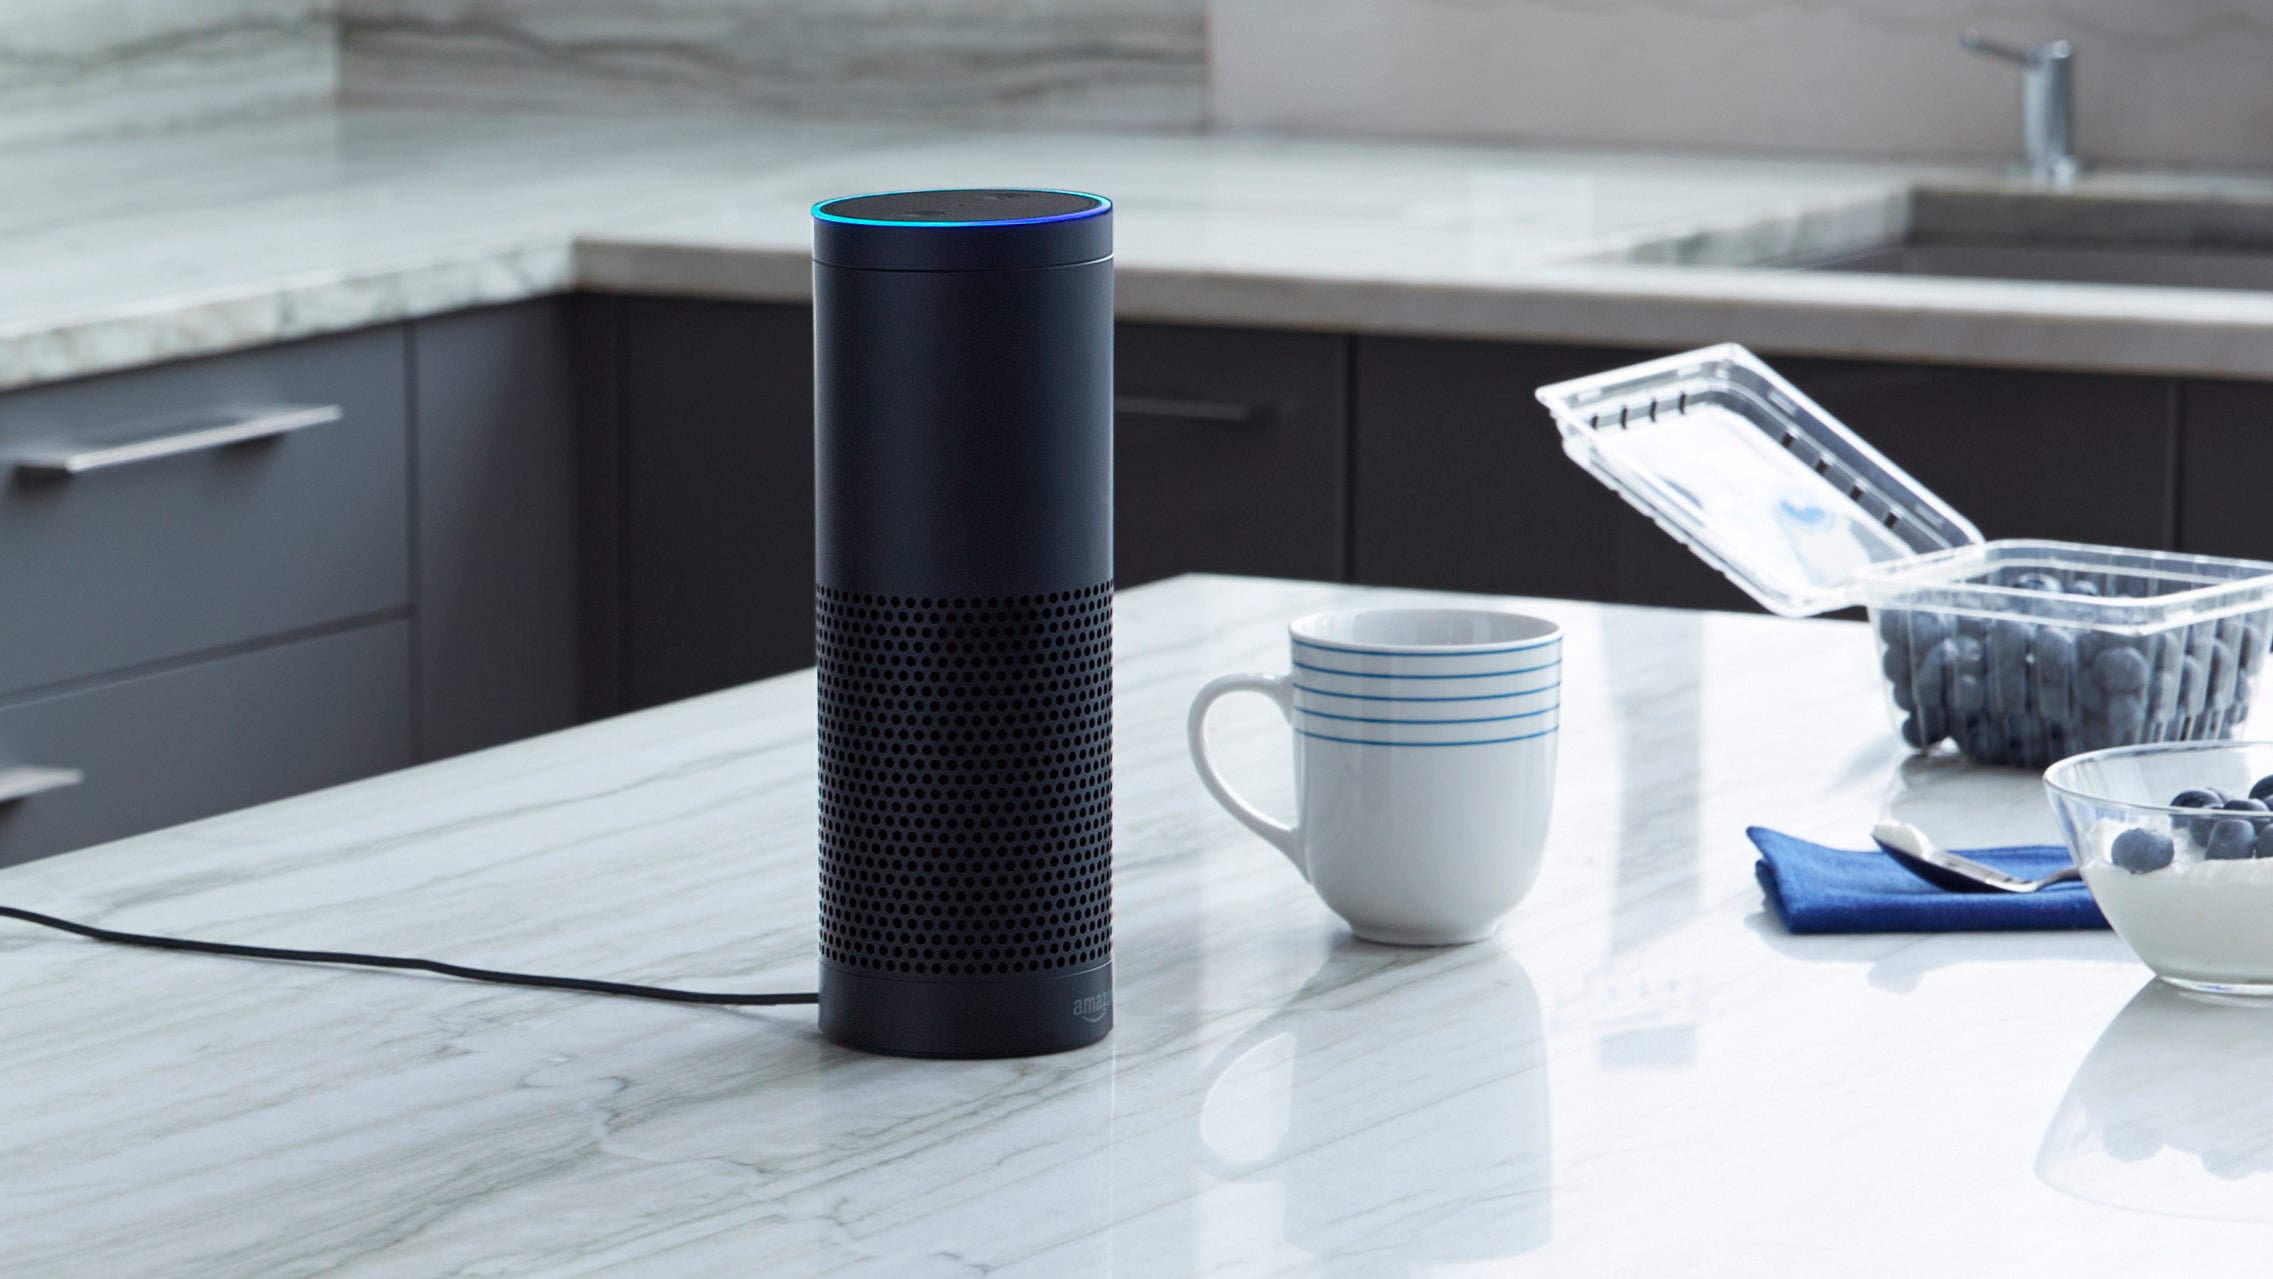 Amazon's Next Echo Sounds Weird